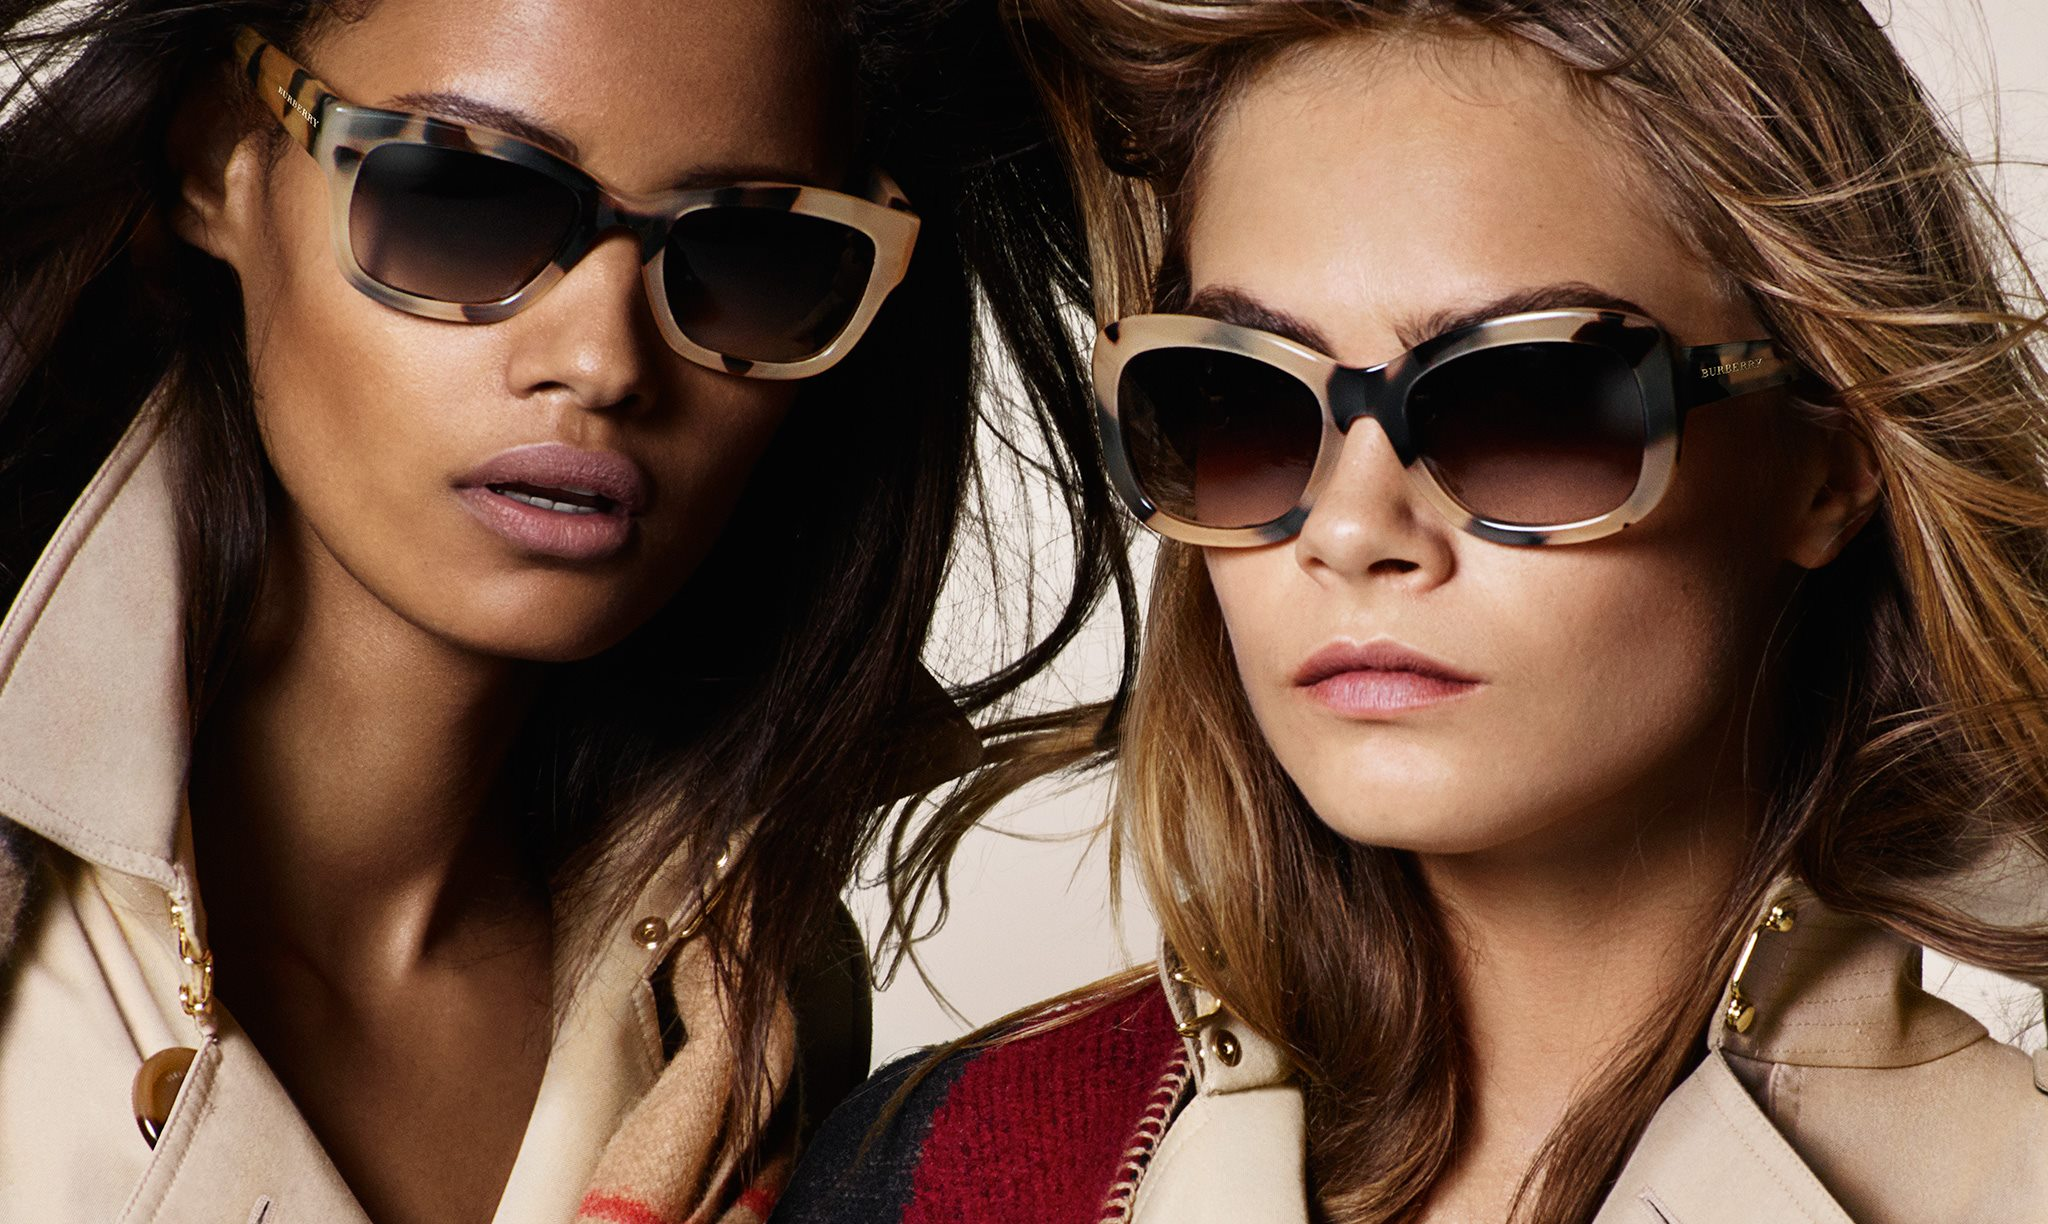 438f25a53c5c Cara Delevingne and Suki Waterhouse Burberry eyewear Autumn Winter 2014  campaign